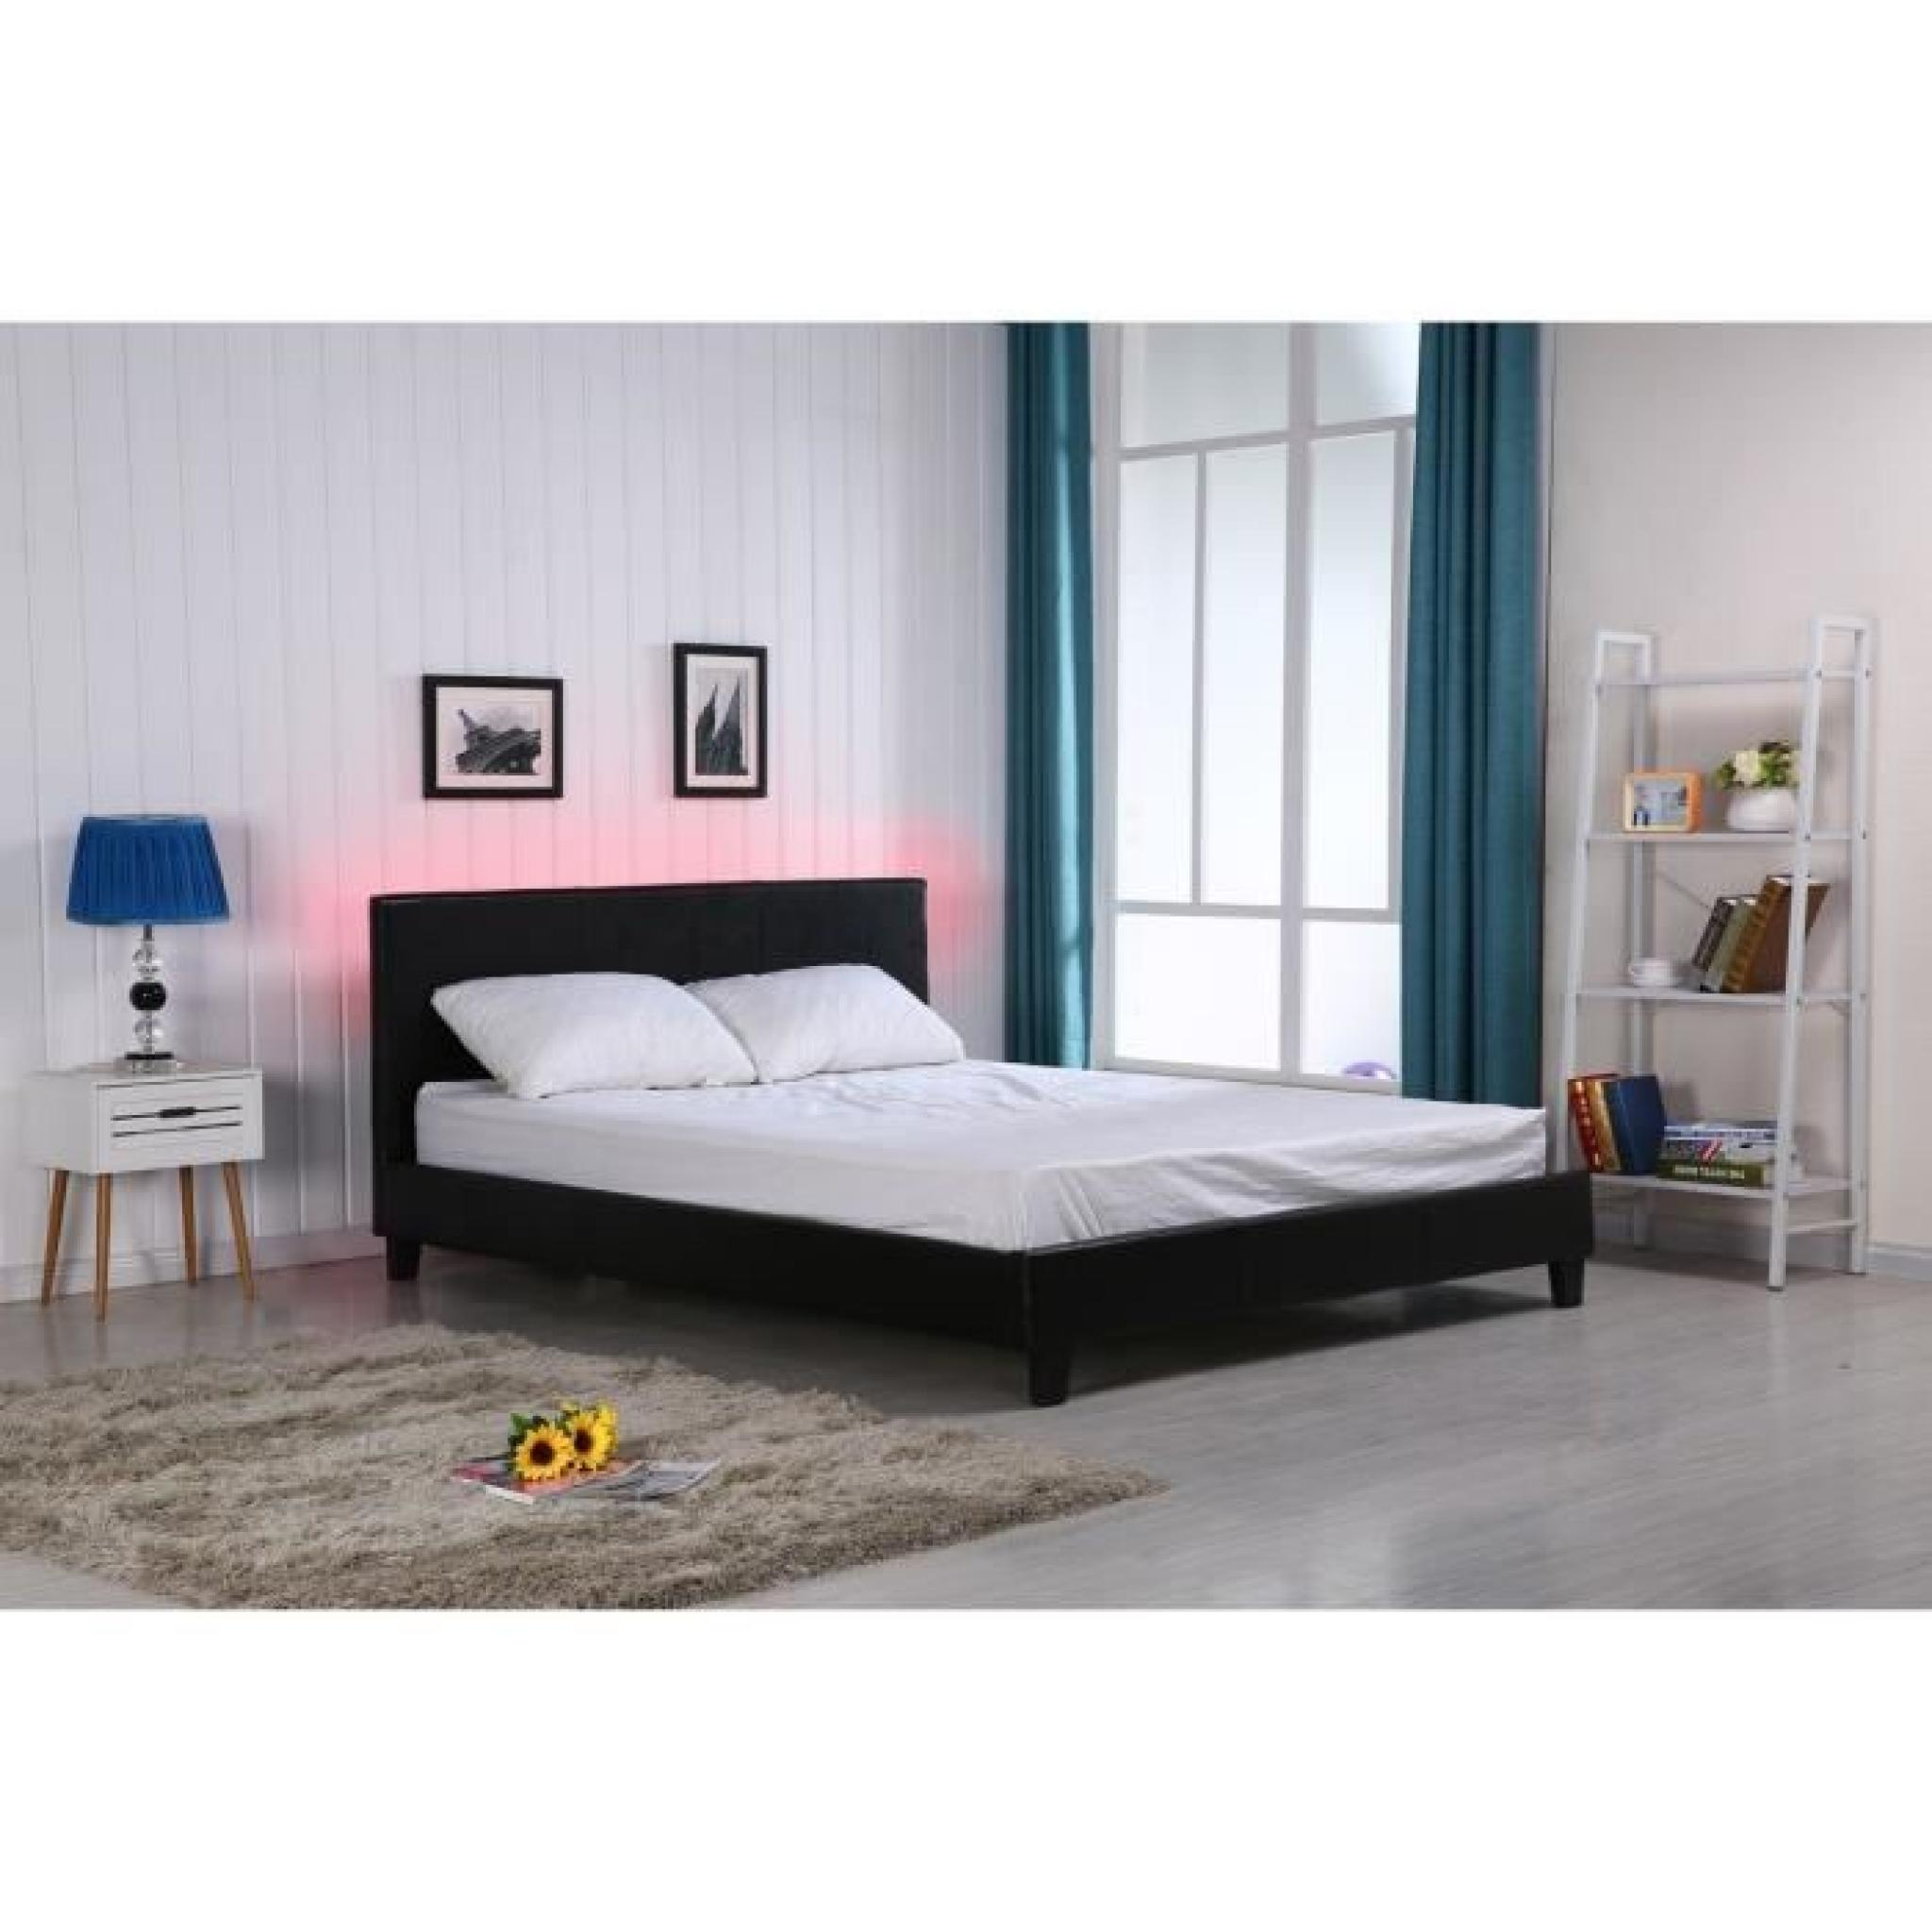 Vegas lit led adulte noir 160x200cm sommier t te de for Lit adulte avec commode